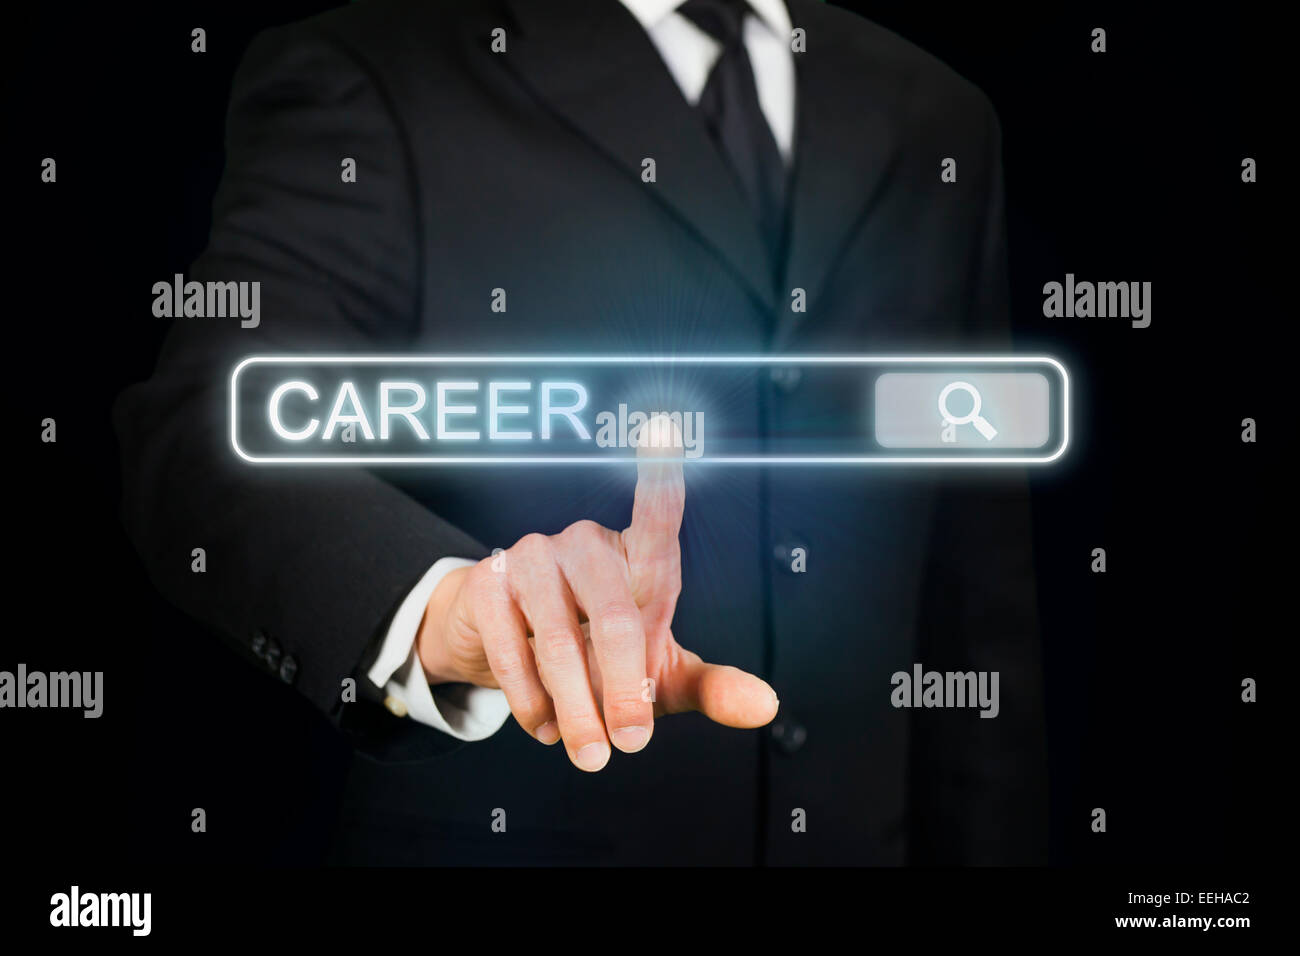 Businessman searching for career - Stock Image